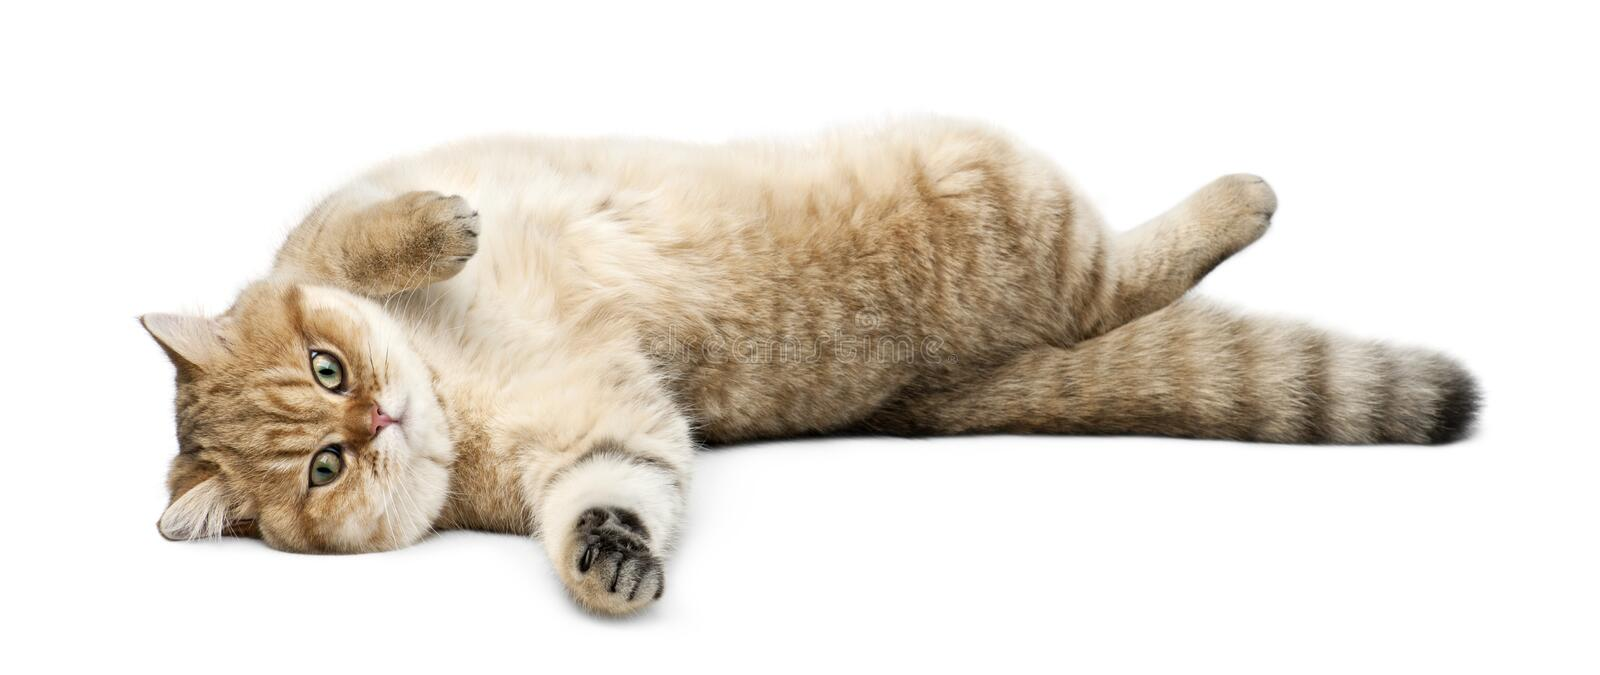 Golden shaded British shorthair, 7 months old, lying against white background royalty free stock image